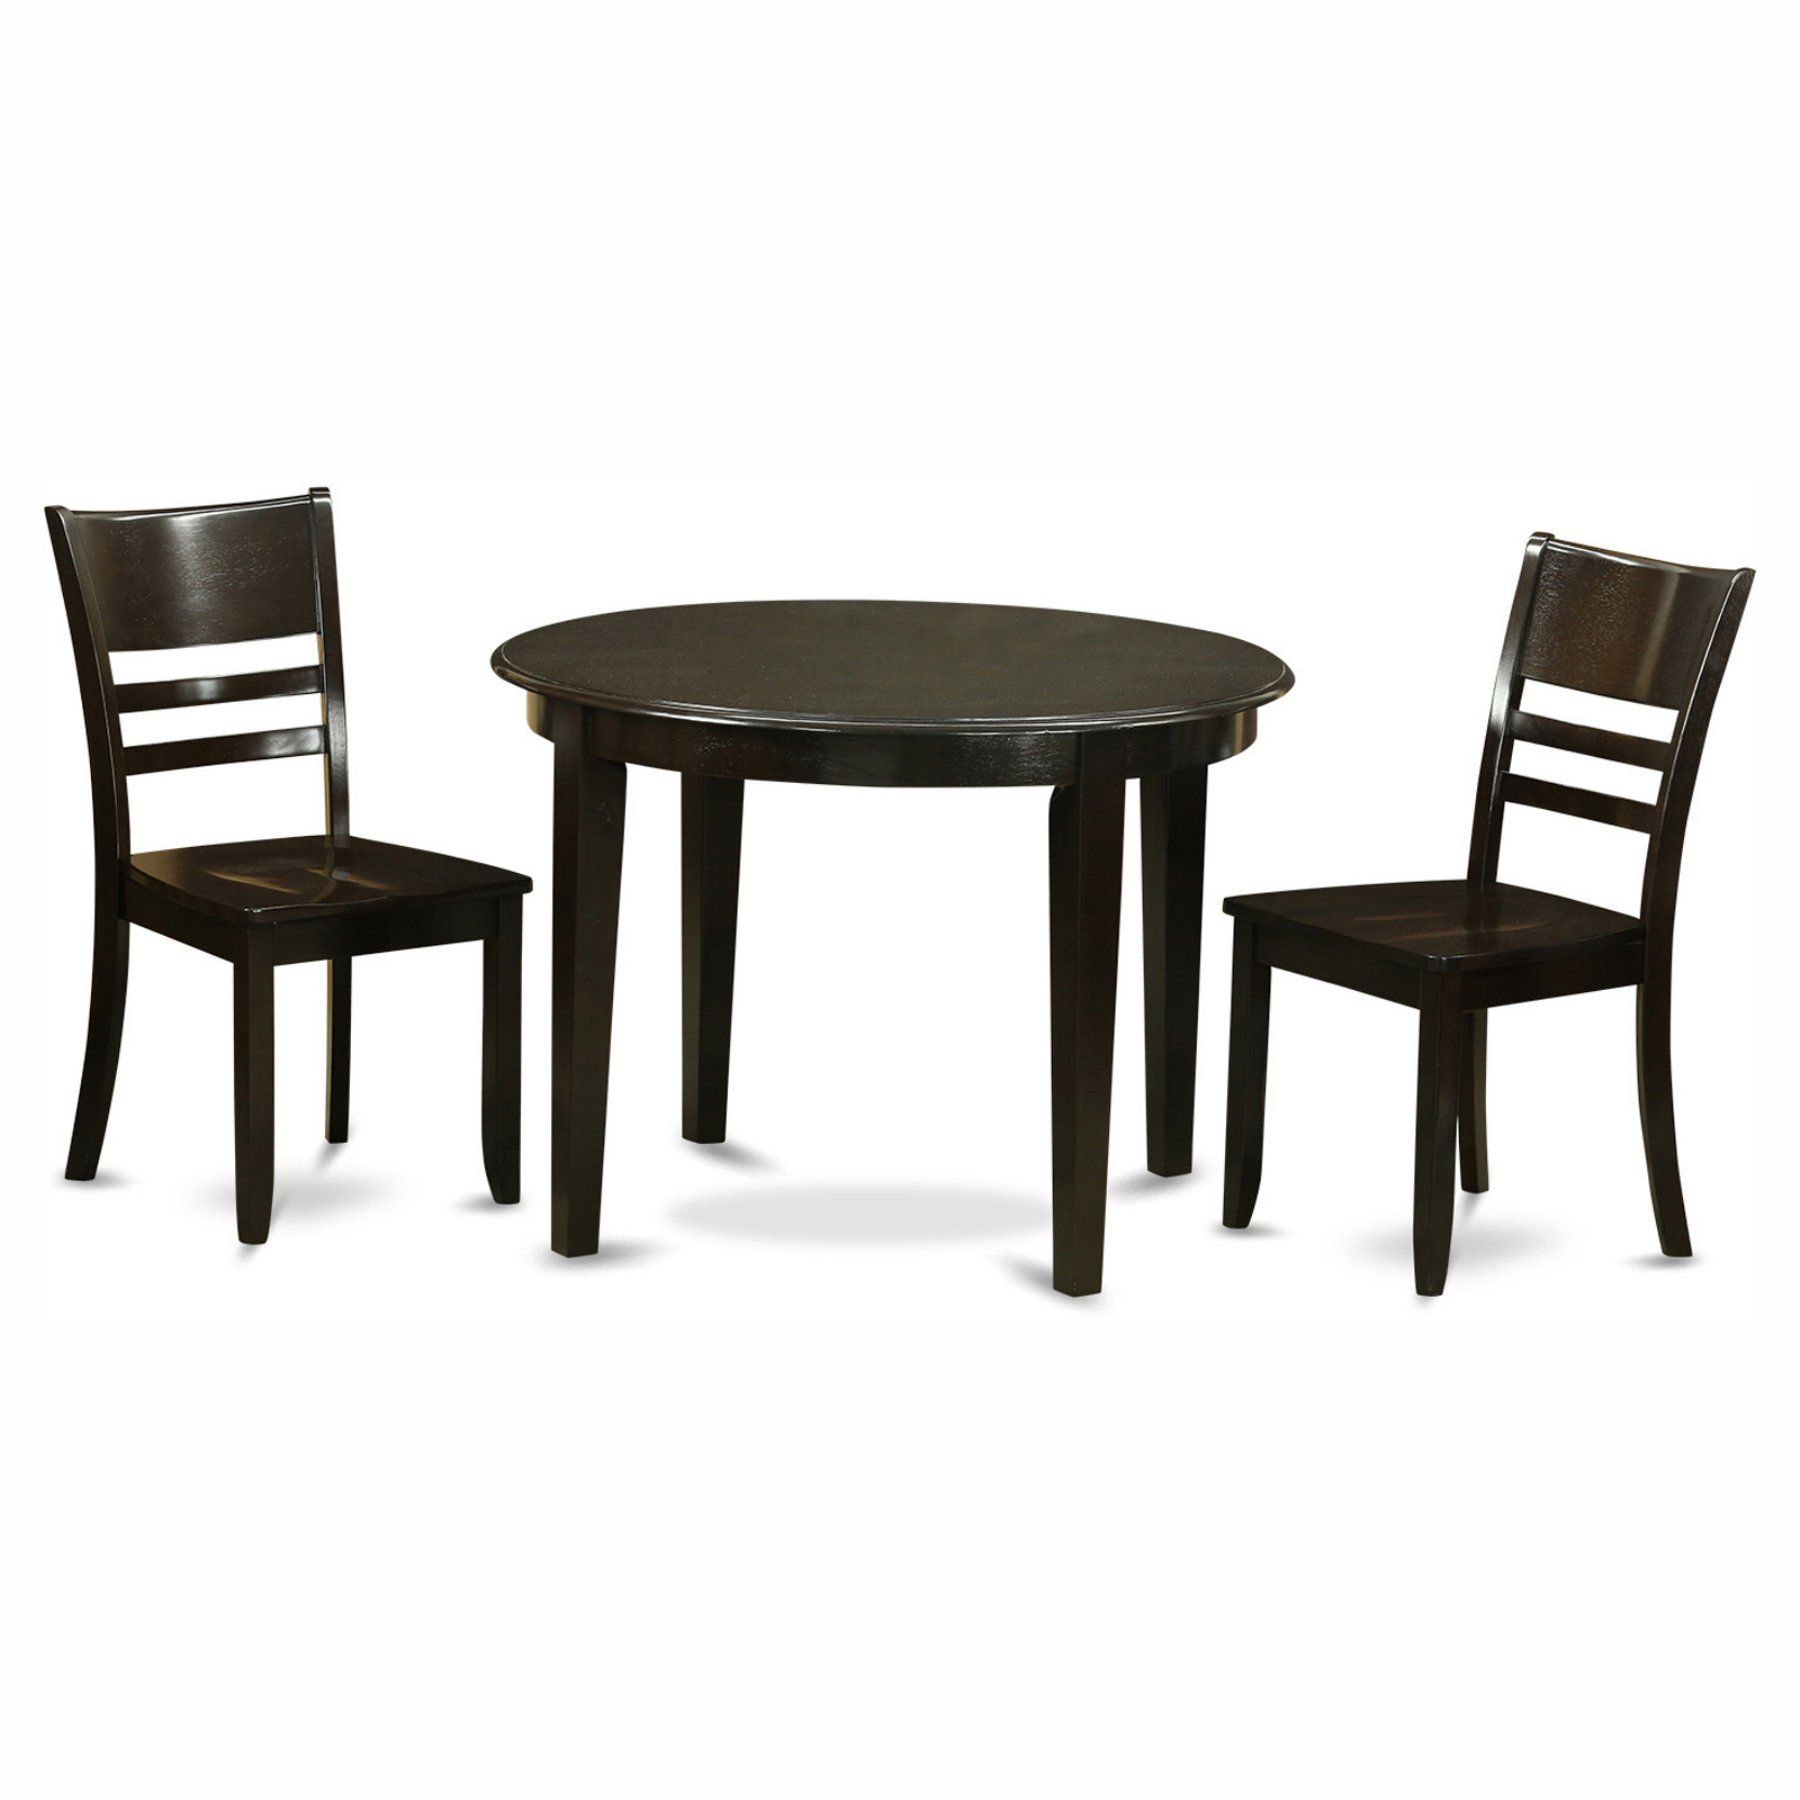 East West Furniture Boston 3 Piece Round Dining Table Set With Alluring 3 Piece Kitchen Table Set Design Ideas